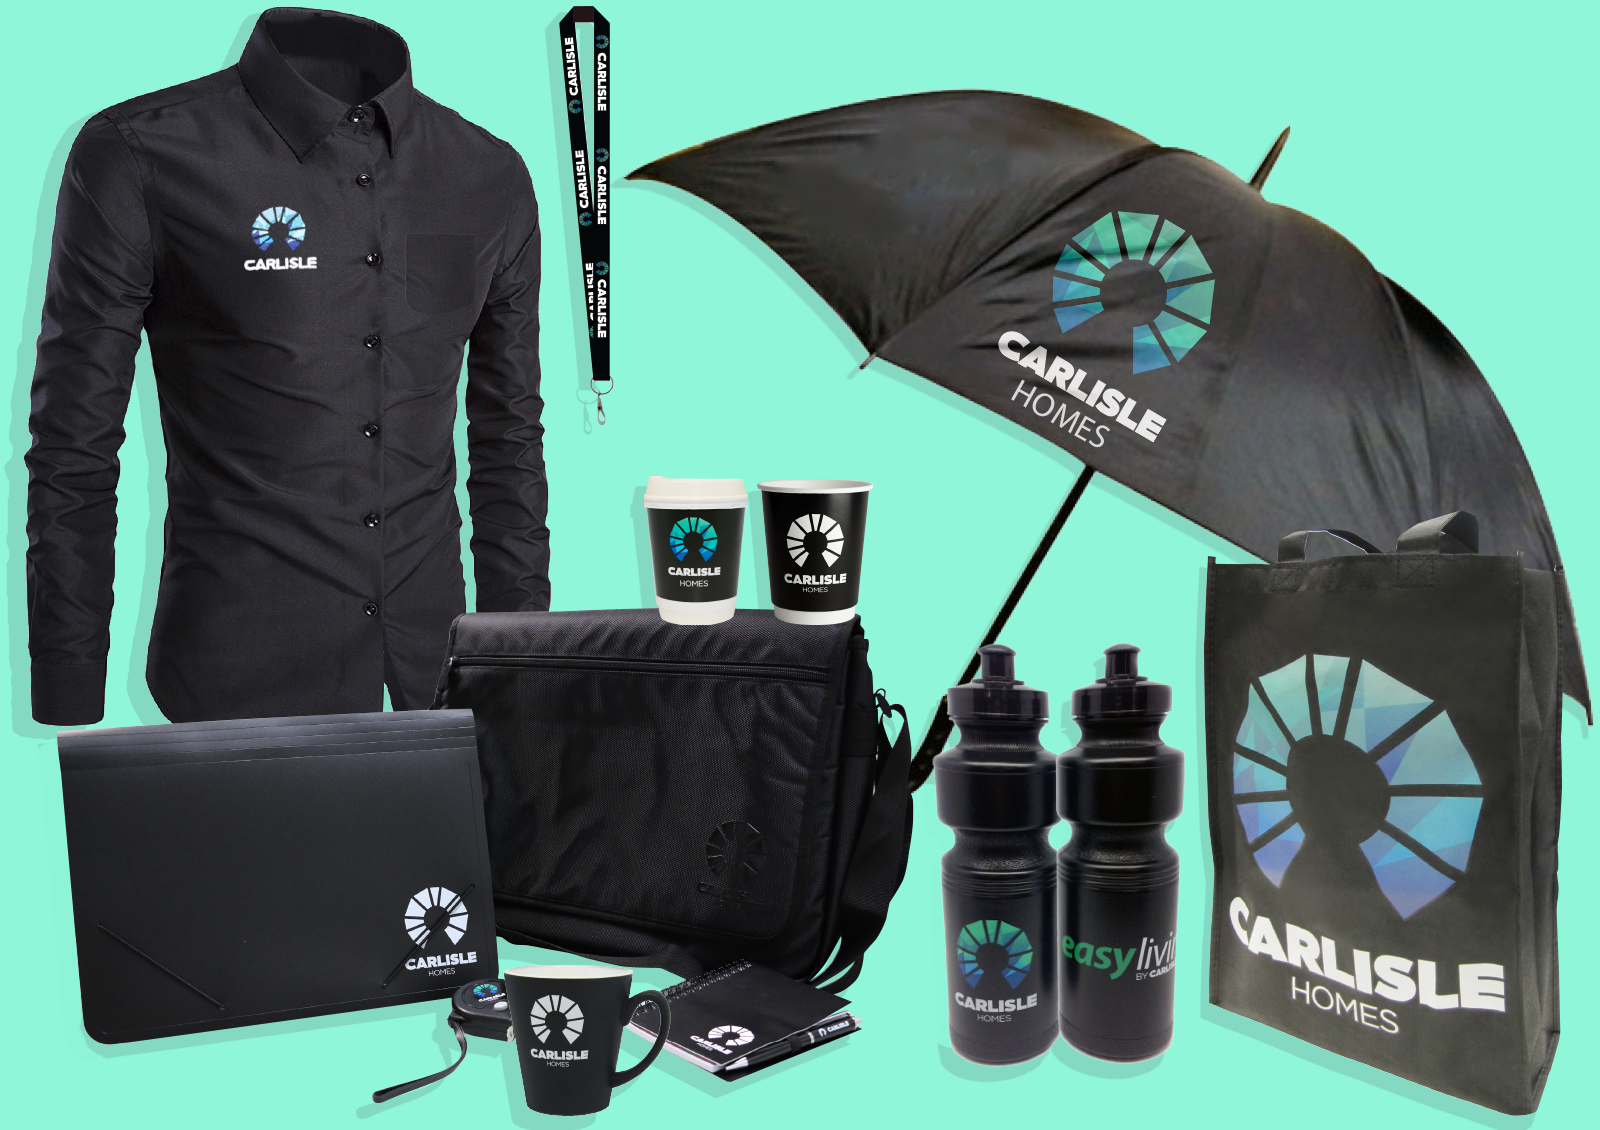 Branded merchandise with a purpose